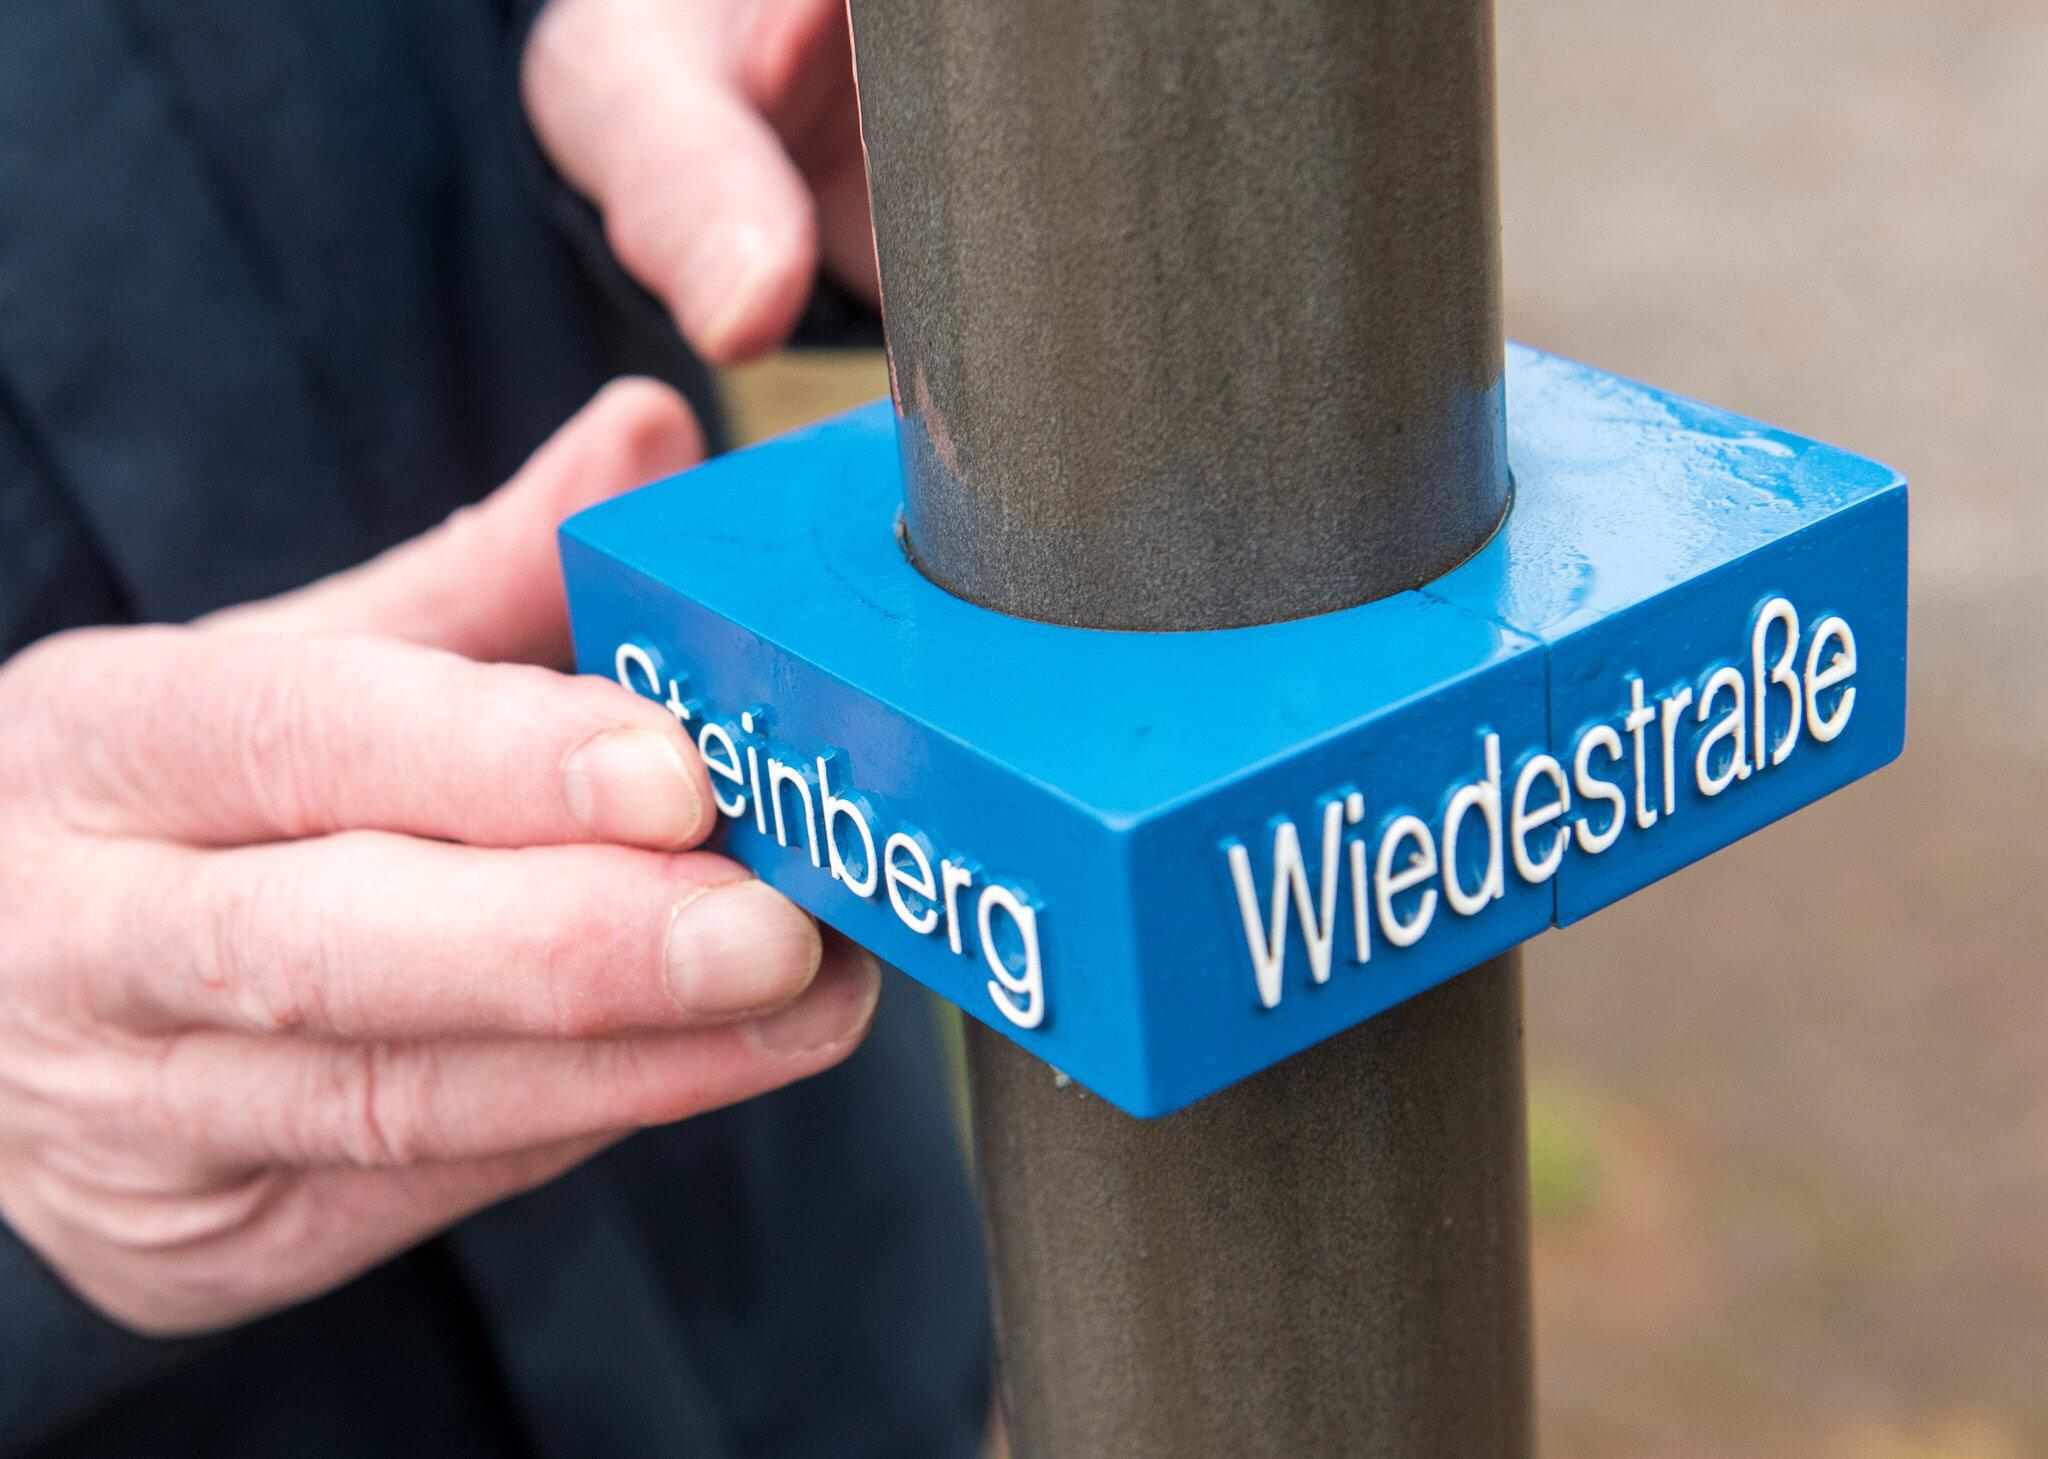 Bild zu Road signs for the visually impaired